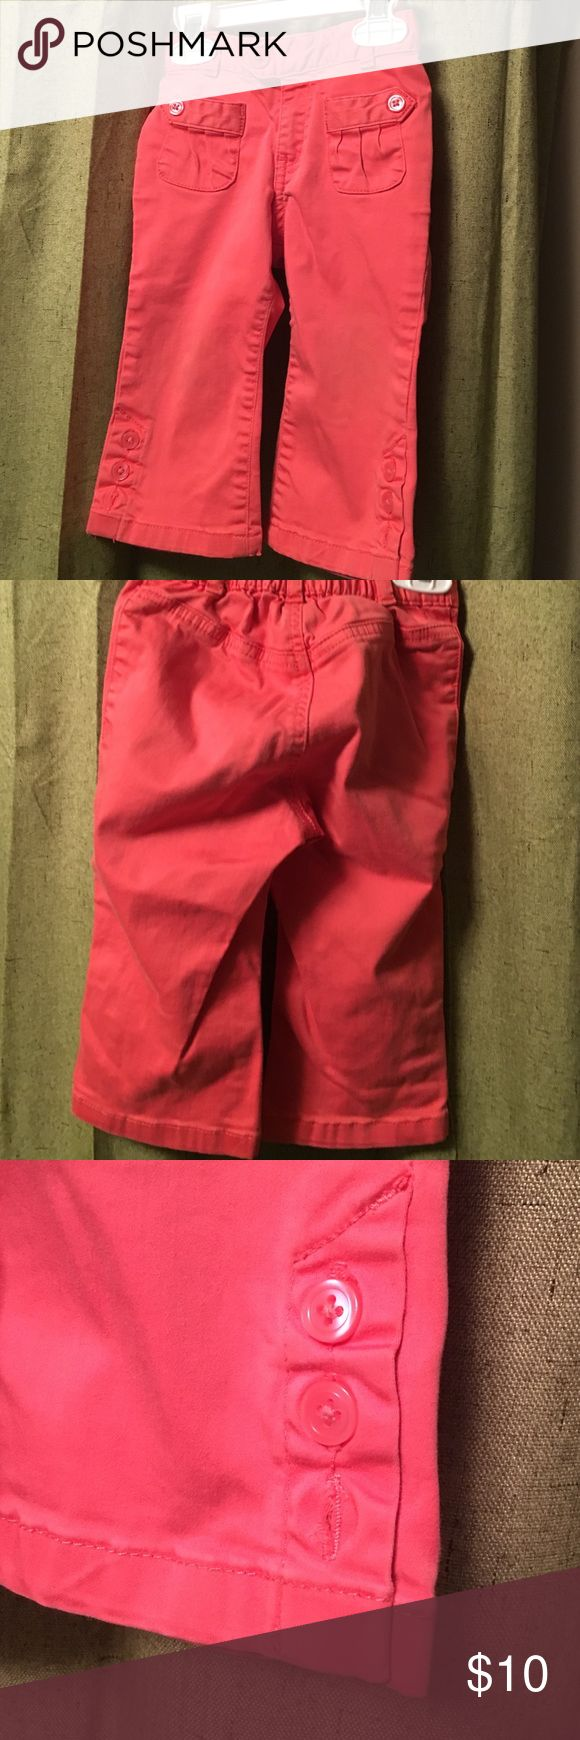 Baby Gap Girl Pants Baby Gap Girl Coral Color Pants. Size 12-18 months. Never worn. Given as gift, no tags because everything was washed before baby was born. Baby Gap Pants